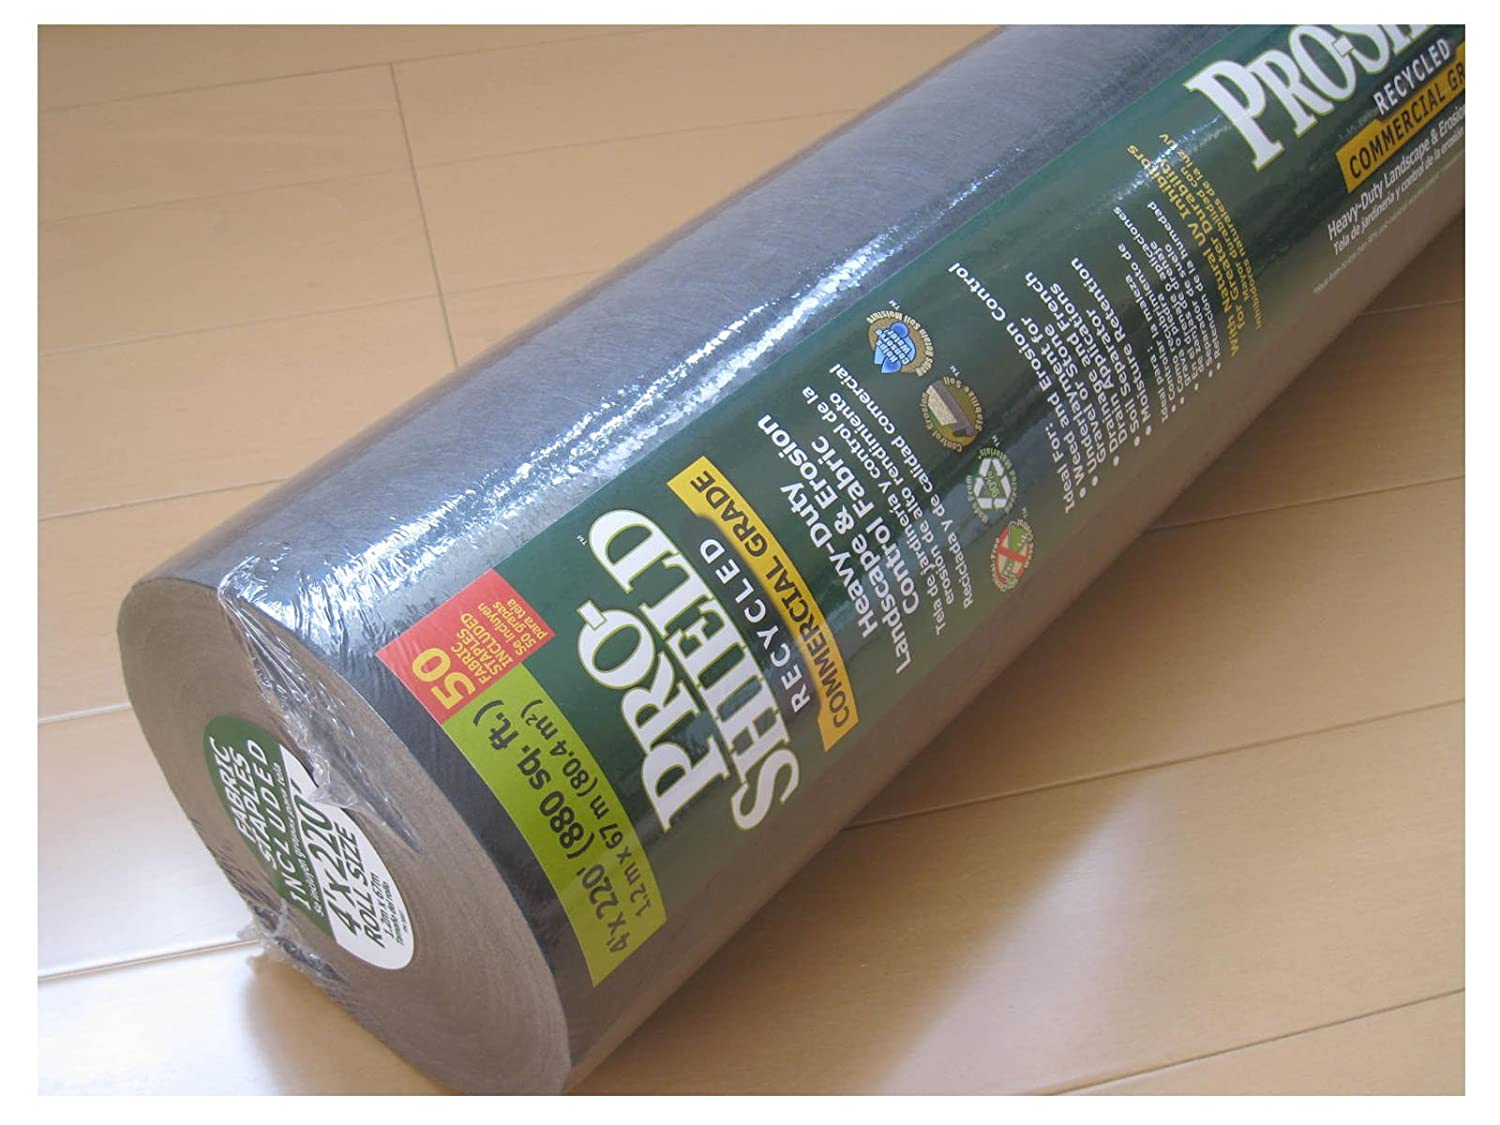 Amazon.com : 4 Wide, 200 Long Dalen Pro Shield Comercial Grade Landscape Fabric, Made in USA : Garden & Outdoor